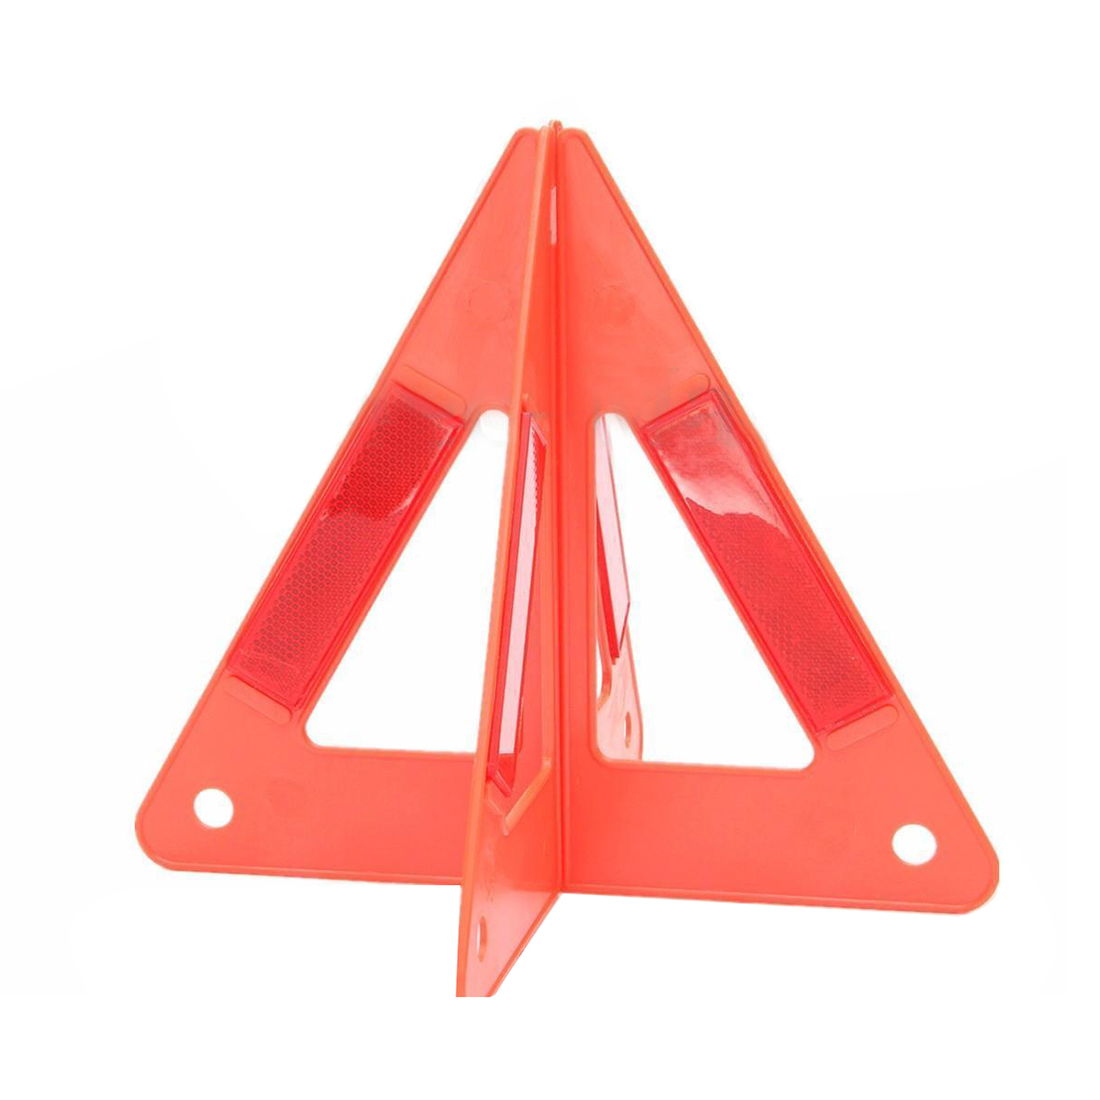 AUTO Car Emergency Breakdown Warning Triple-cornered Sign Red Reflective Safety Hazard Travel in